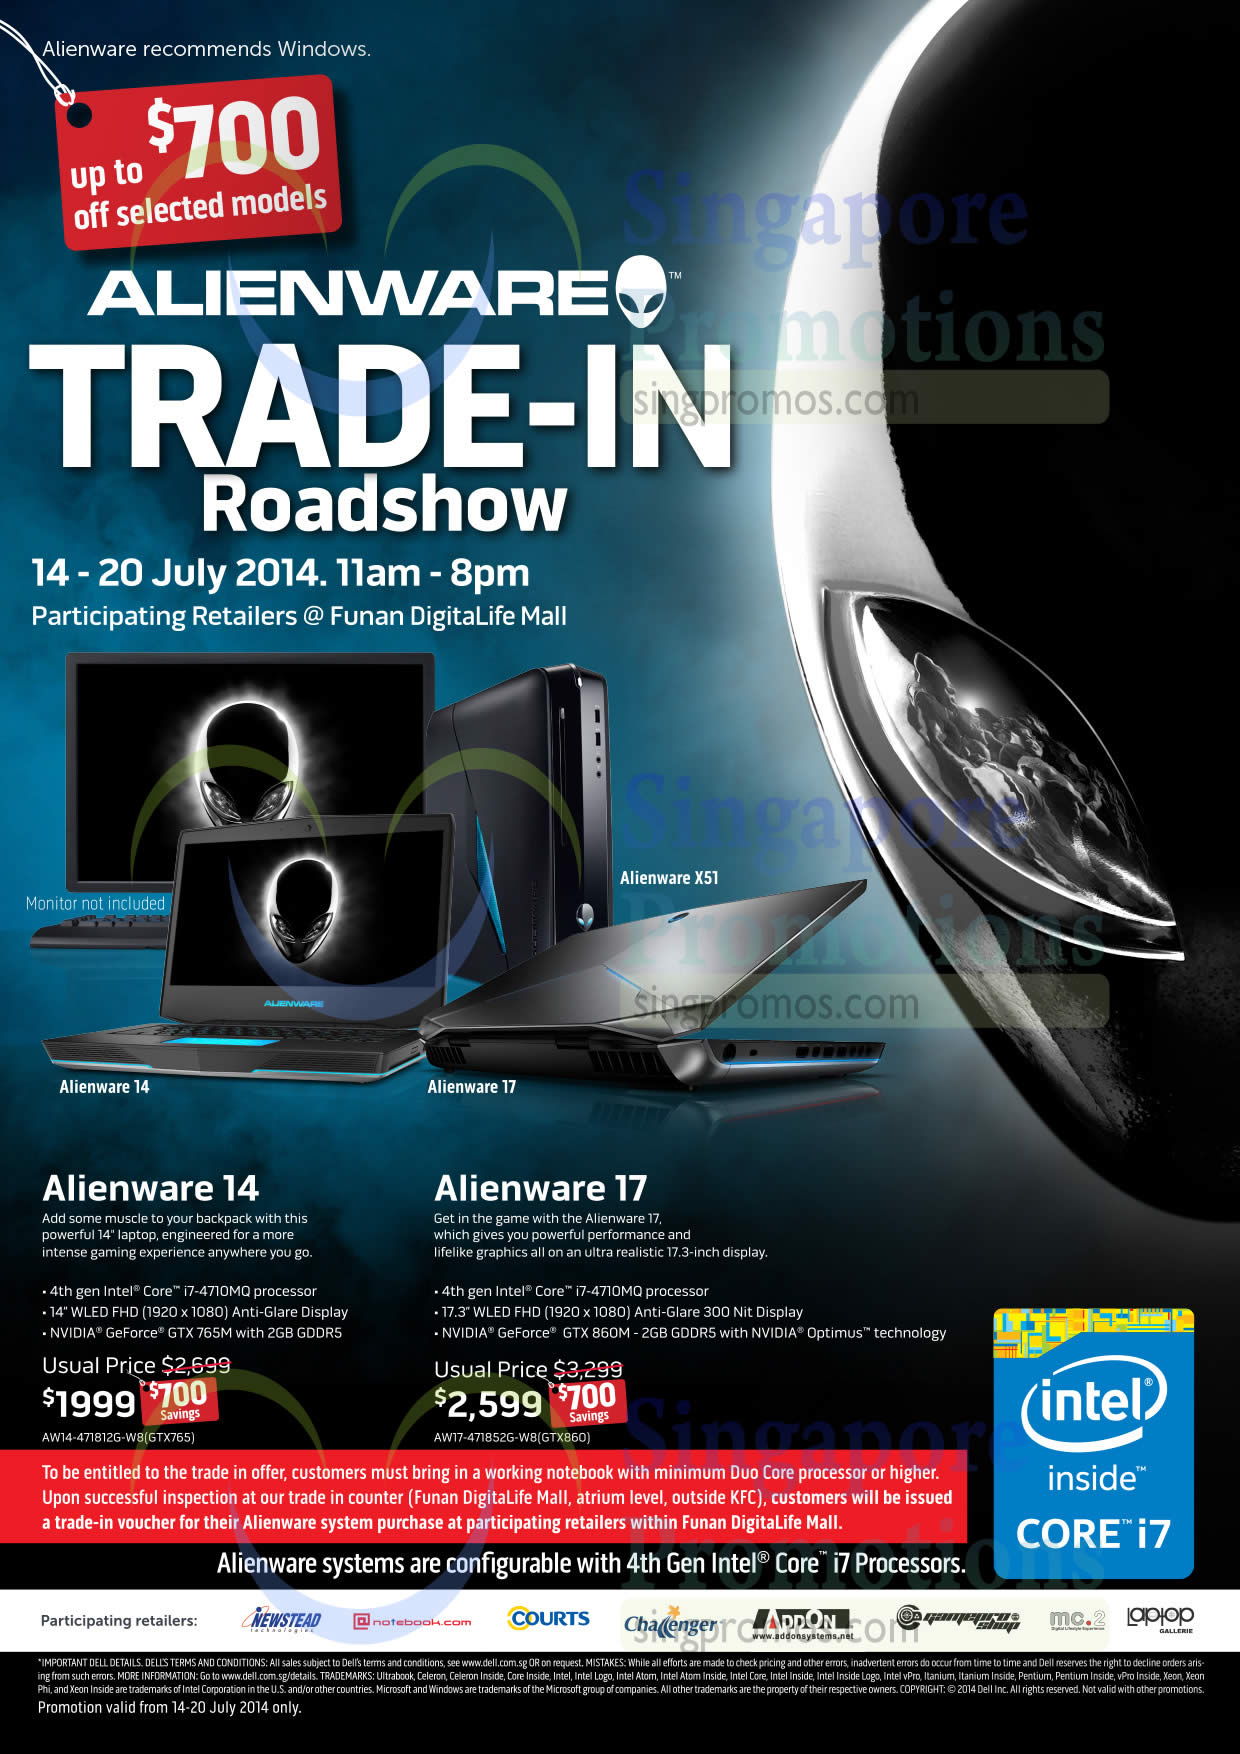 Dell Alienware 14 Notebook AW14-471812G-W8(GTX765), Dell Alienware 17 Notebook AW17-471852G-W8(GTX860)